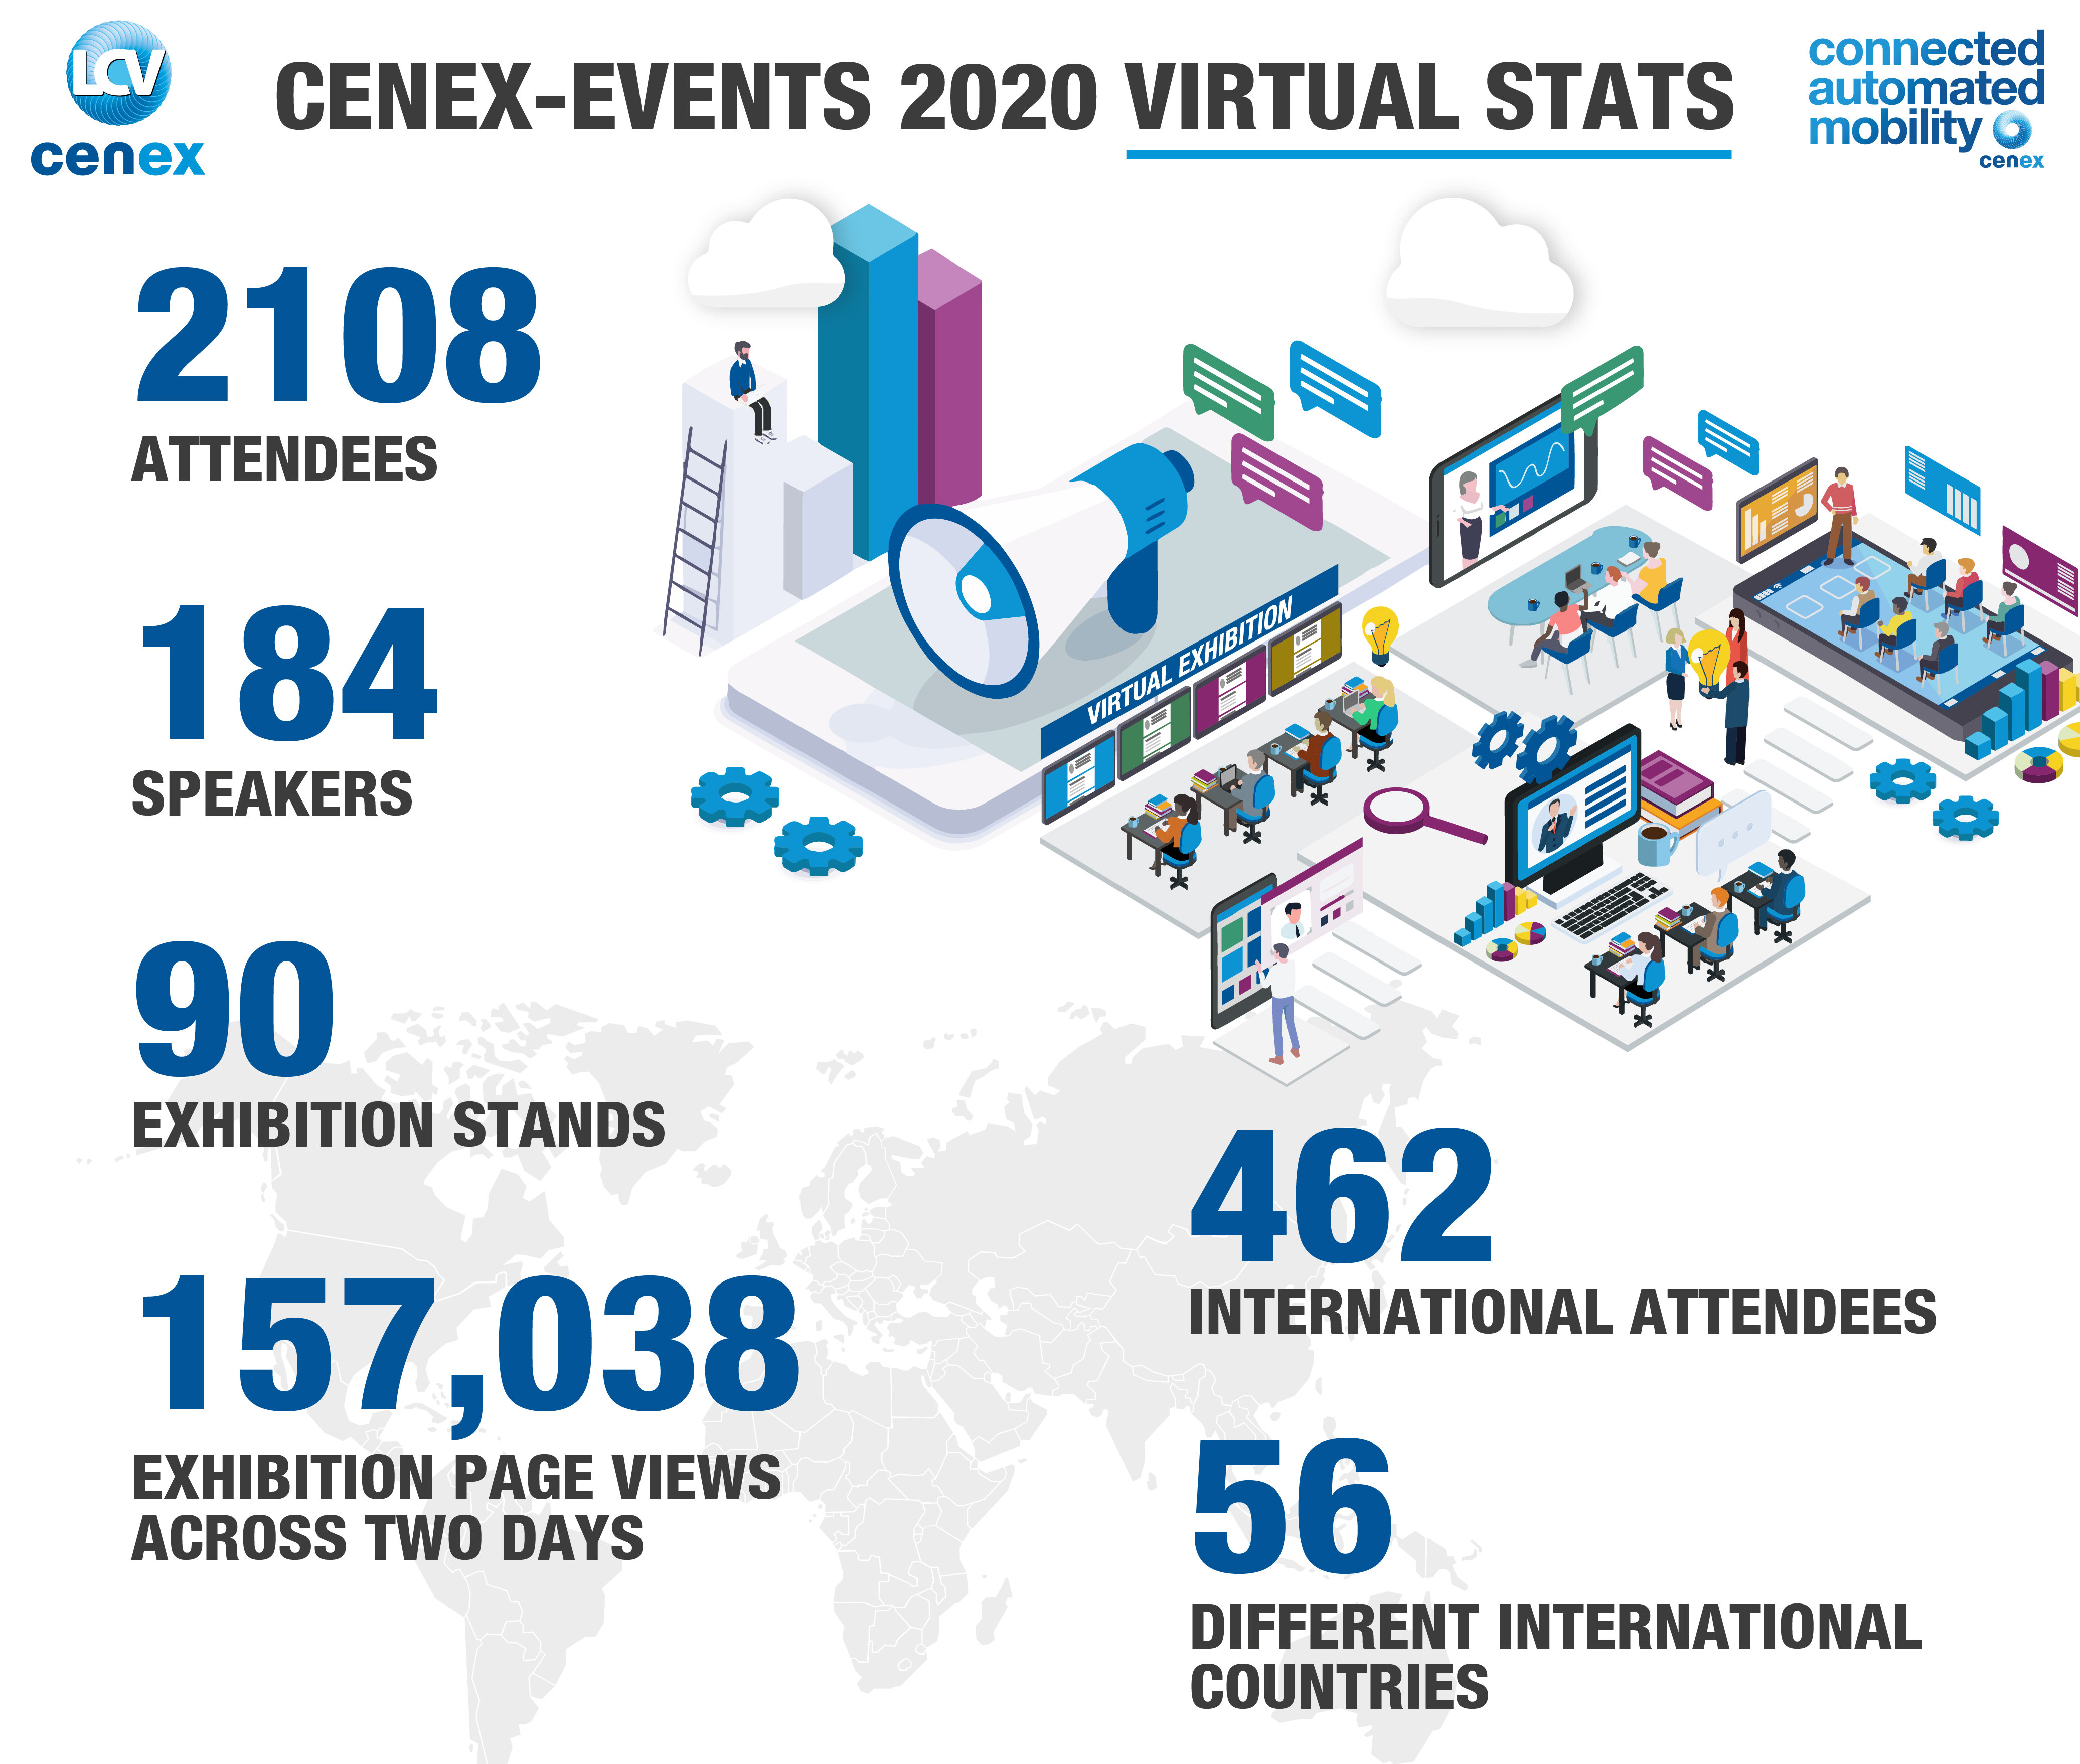 Cenex-LCV2020 By Numbers